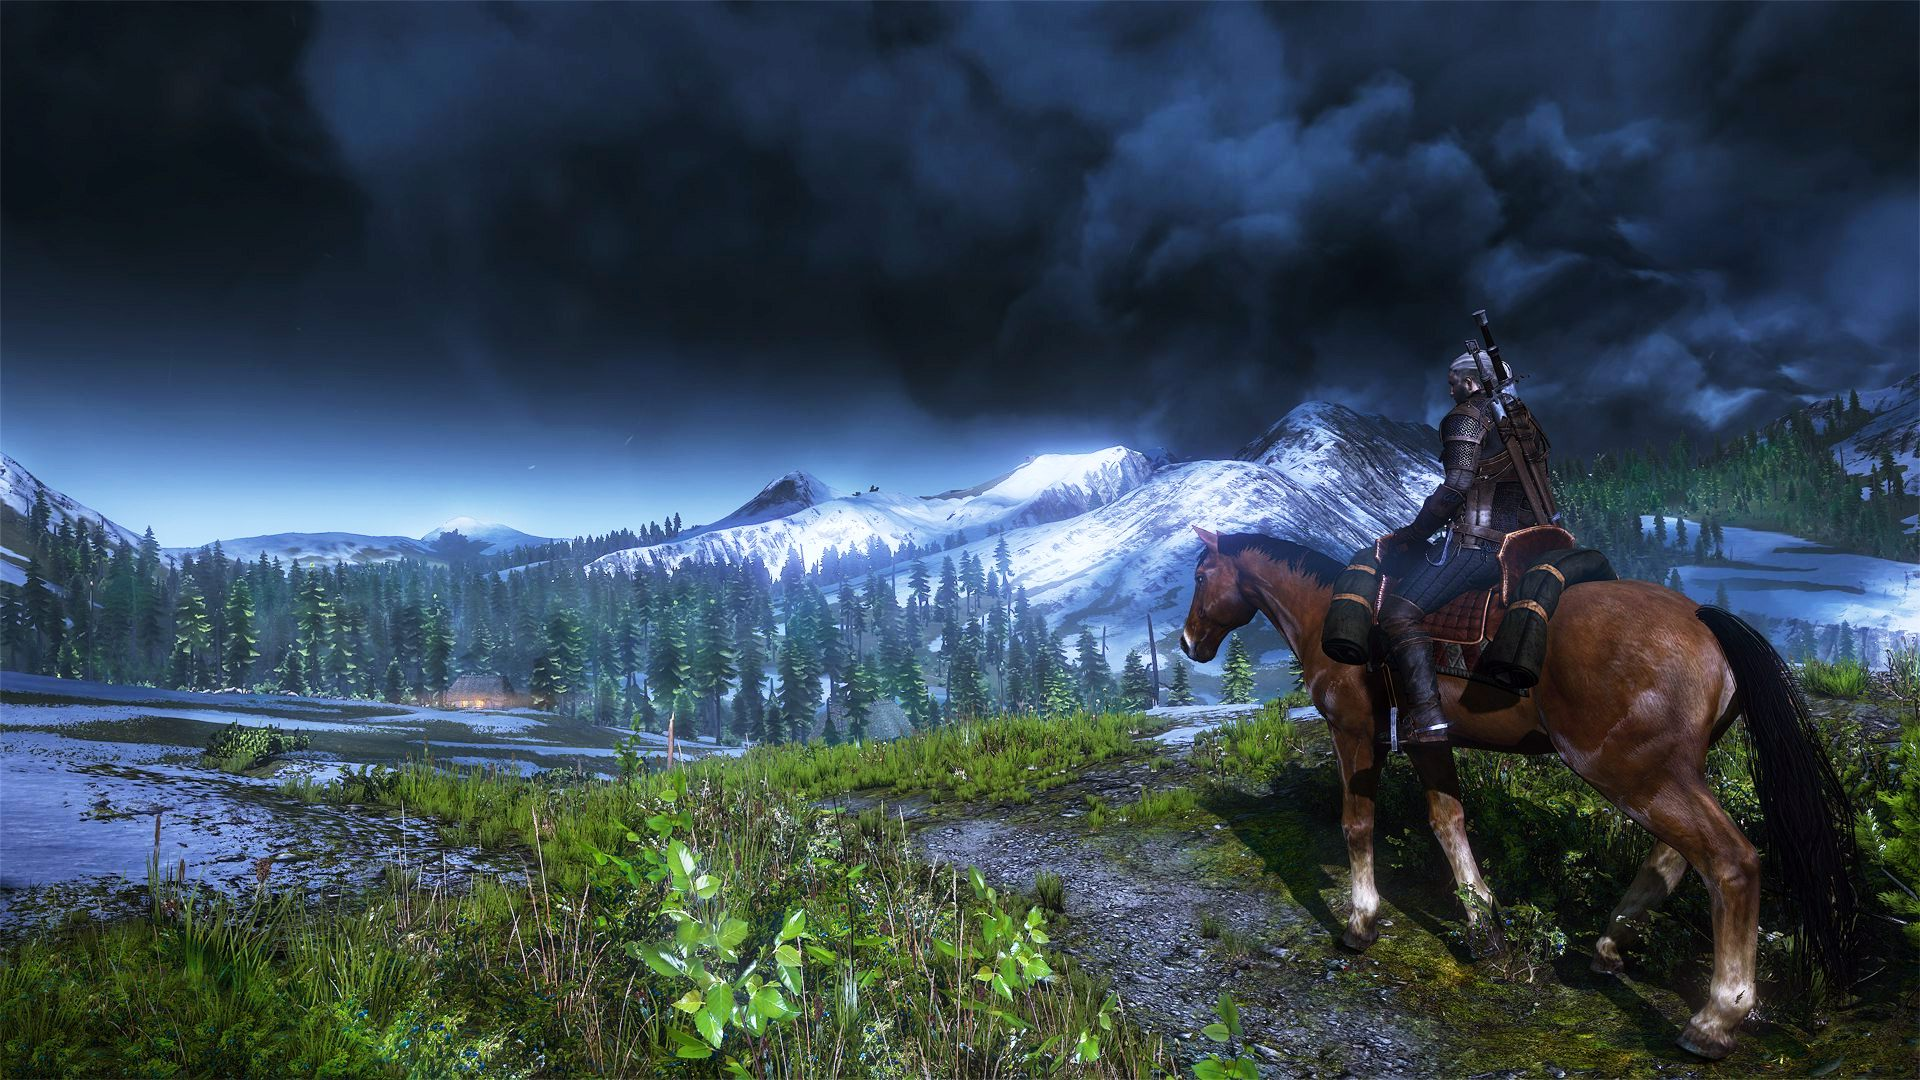 Witcher 3 Wallpaper Hd: The Witcher 3 Wallpaper 1080p